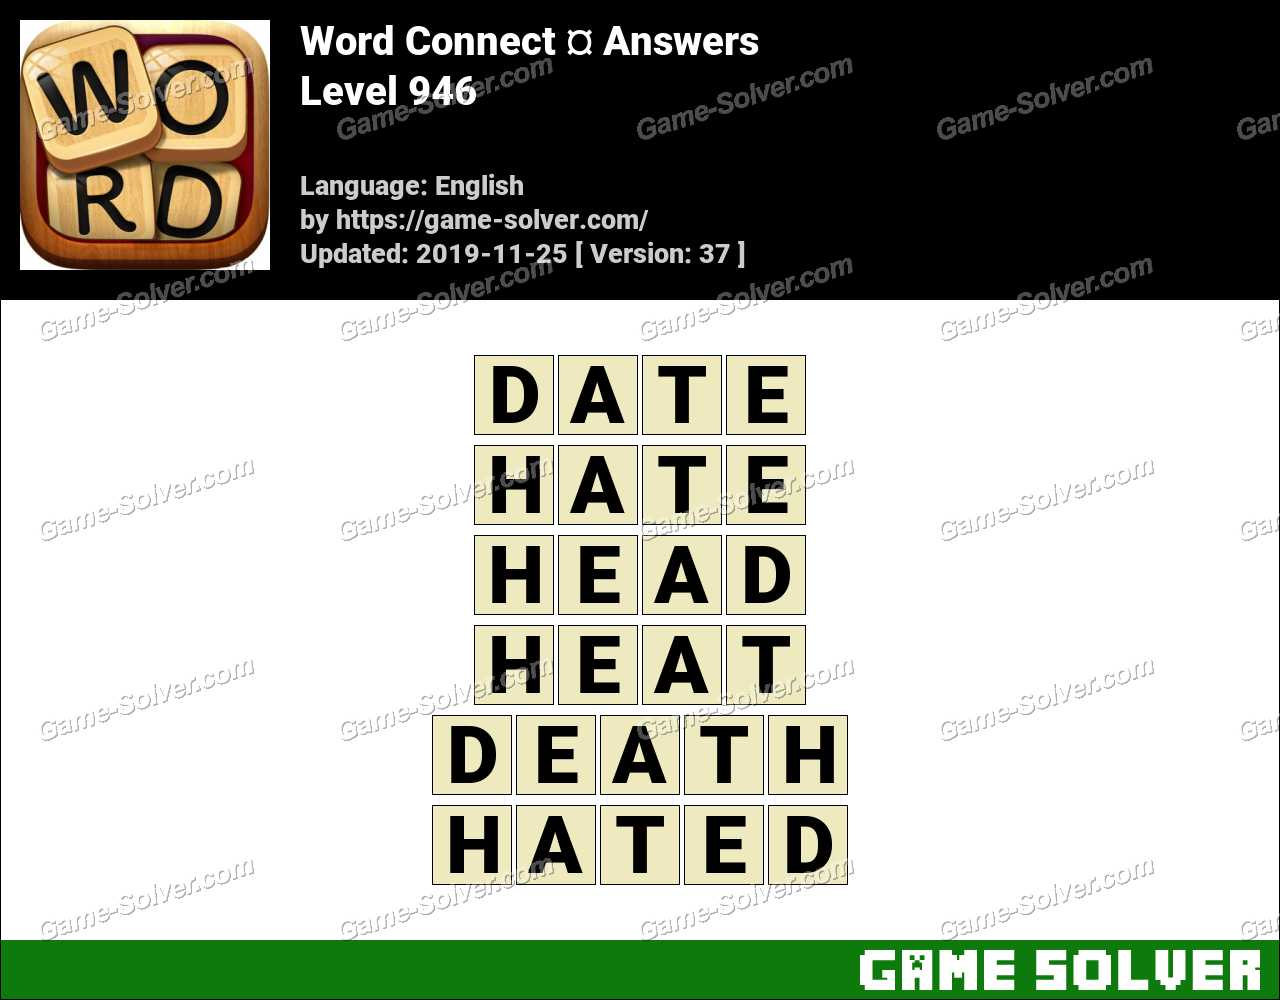 Word Connect Level 946 Answers